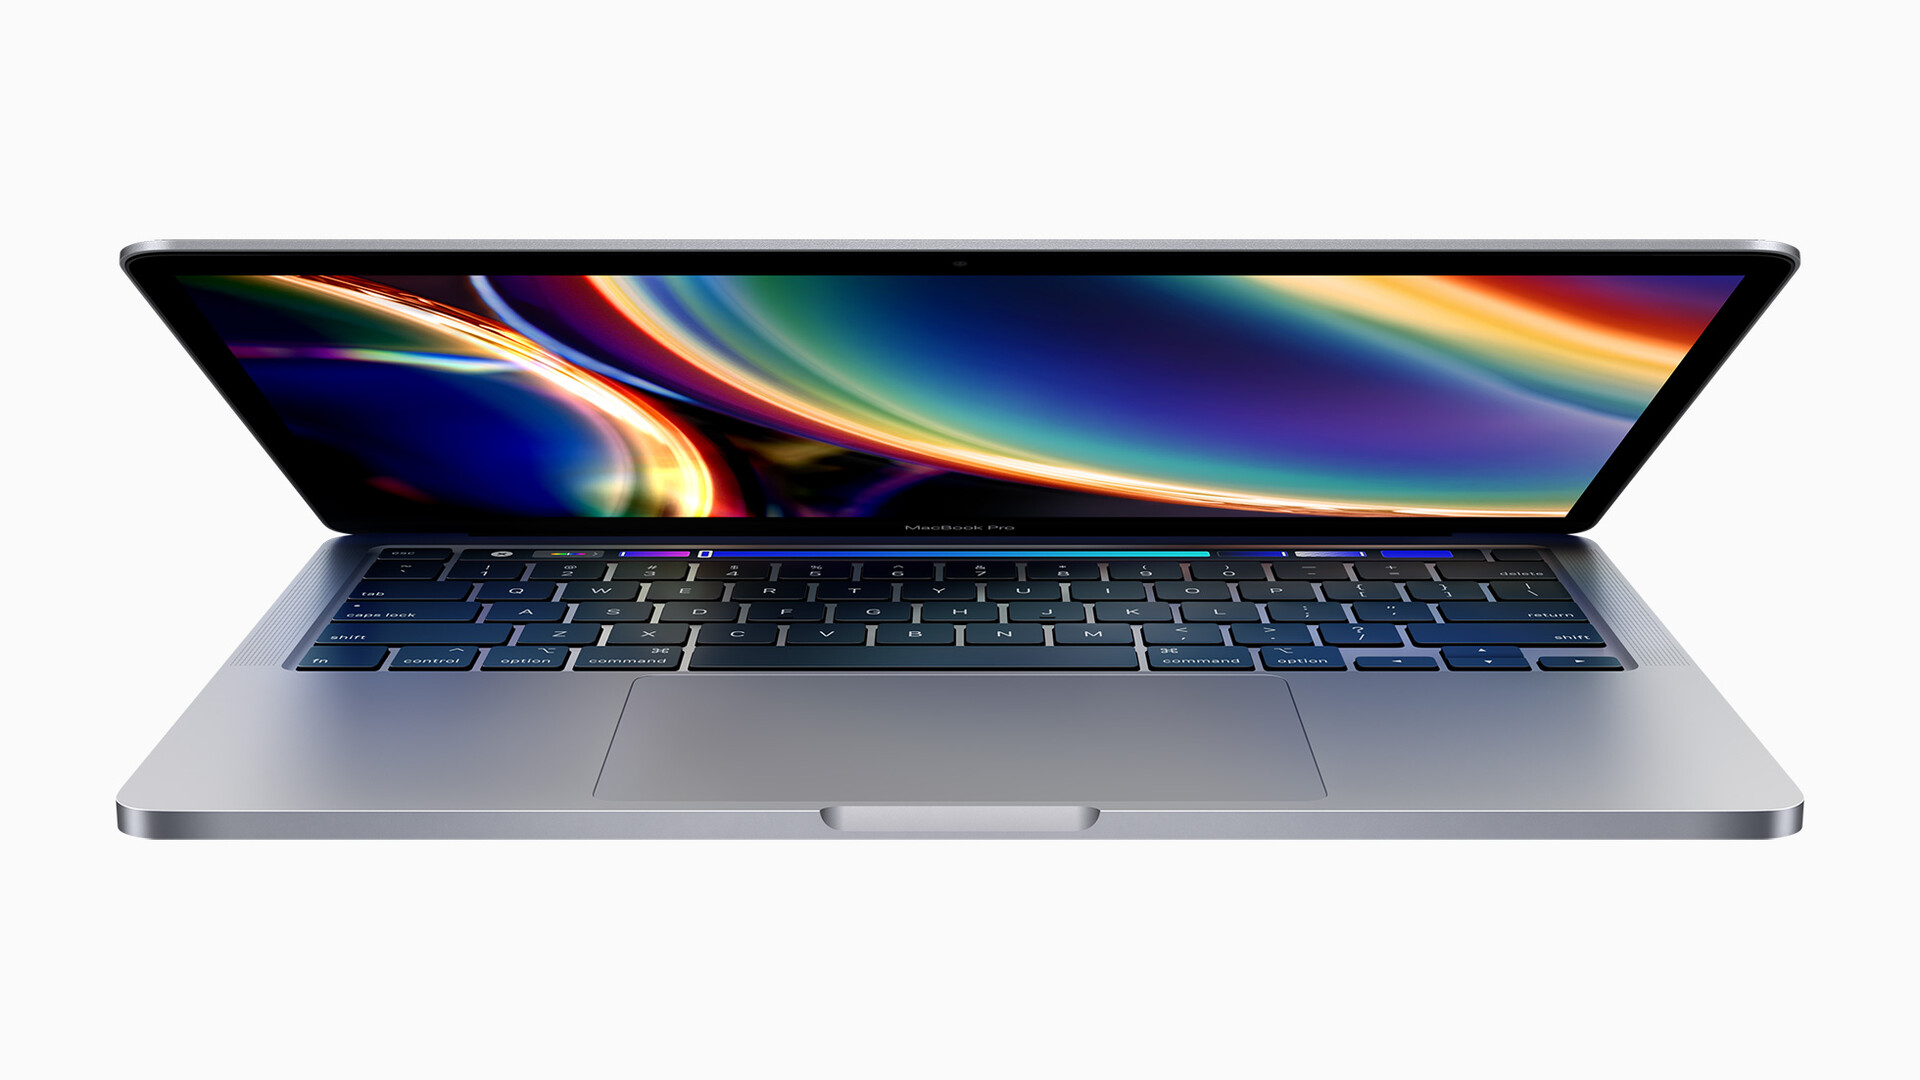 14-inch MacBook Pro rumored to launch in 2021